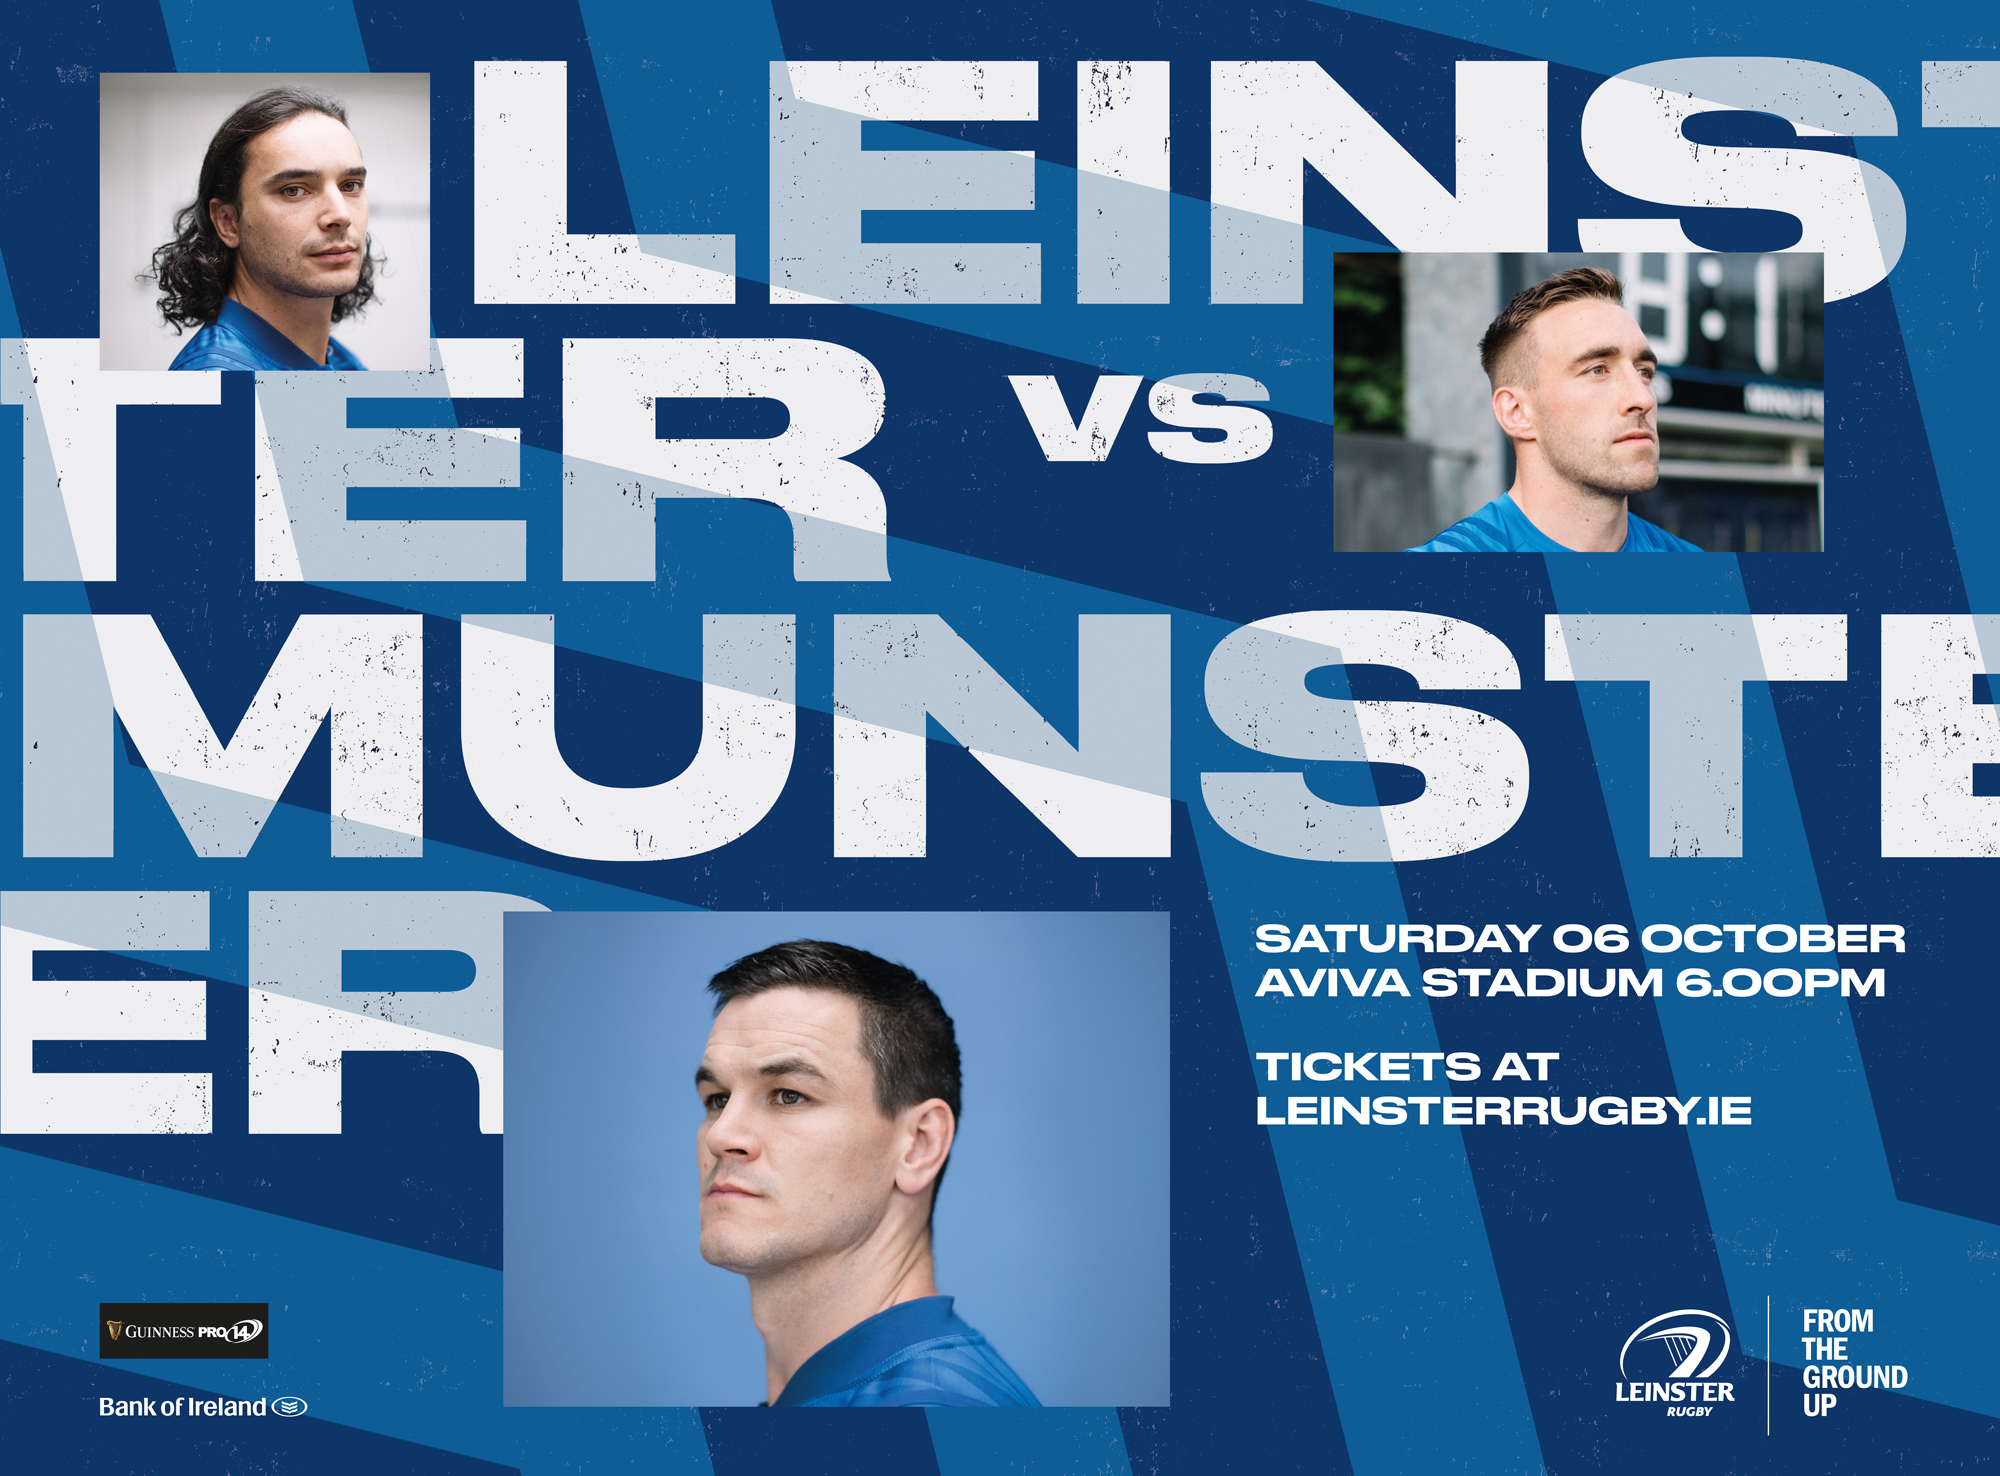 Cover image: Leinster Rugby 2018/19